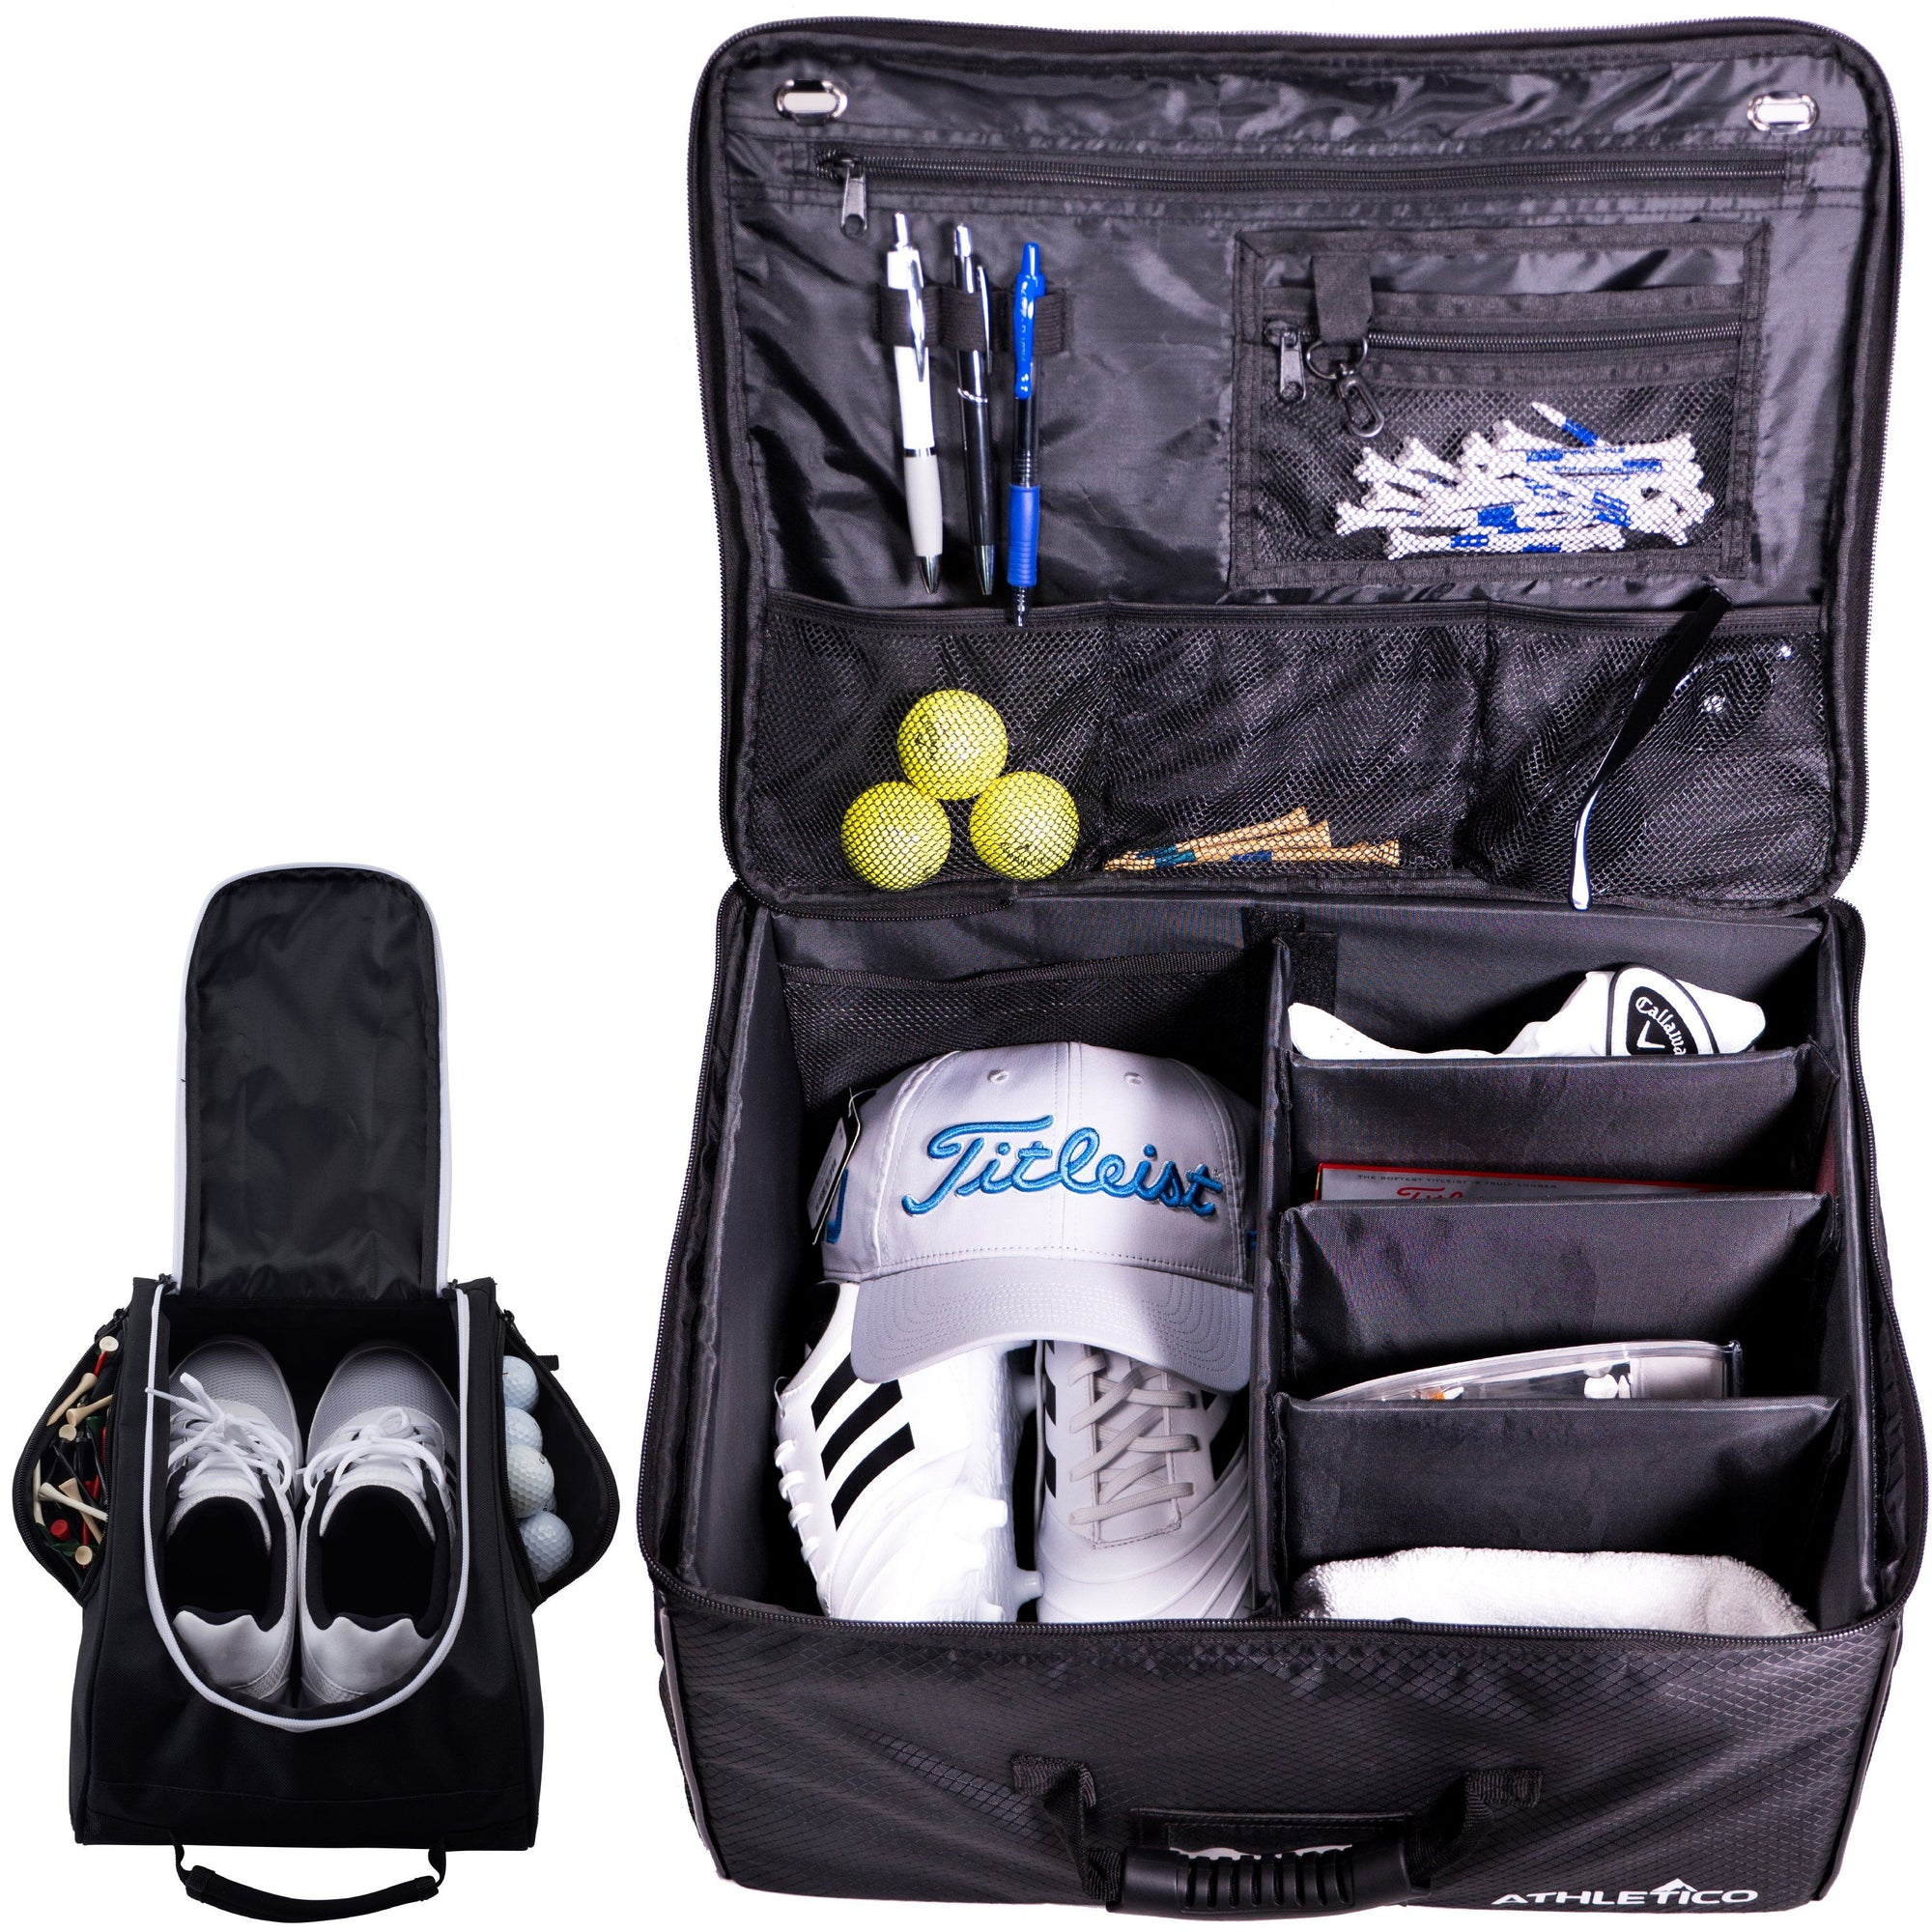 Athletico Golf Trunk Organizer + Shoe Bag - Athletico